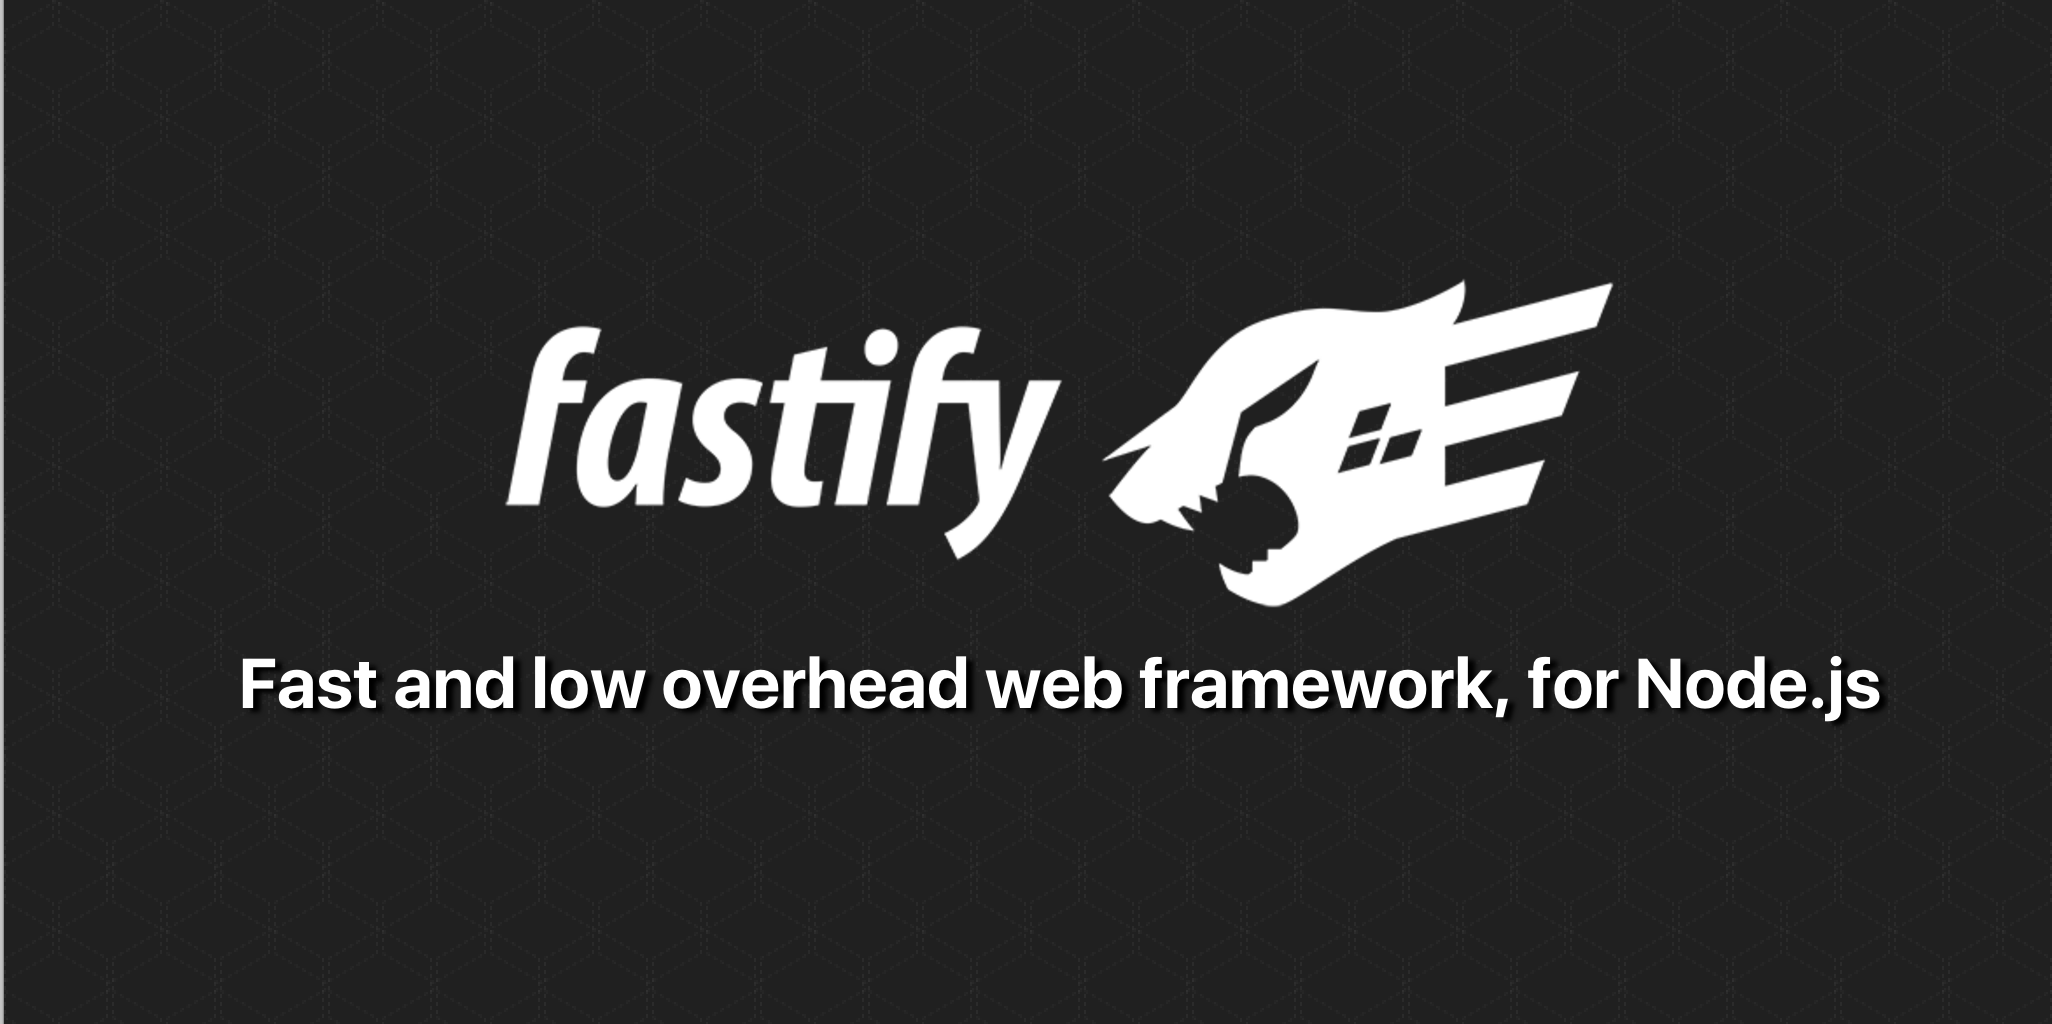 Fastify, Fast and low overhead web framework, for Node js